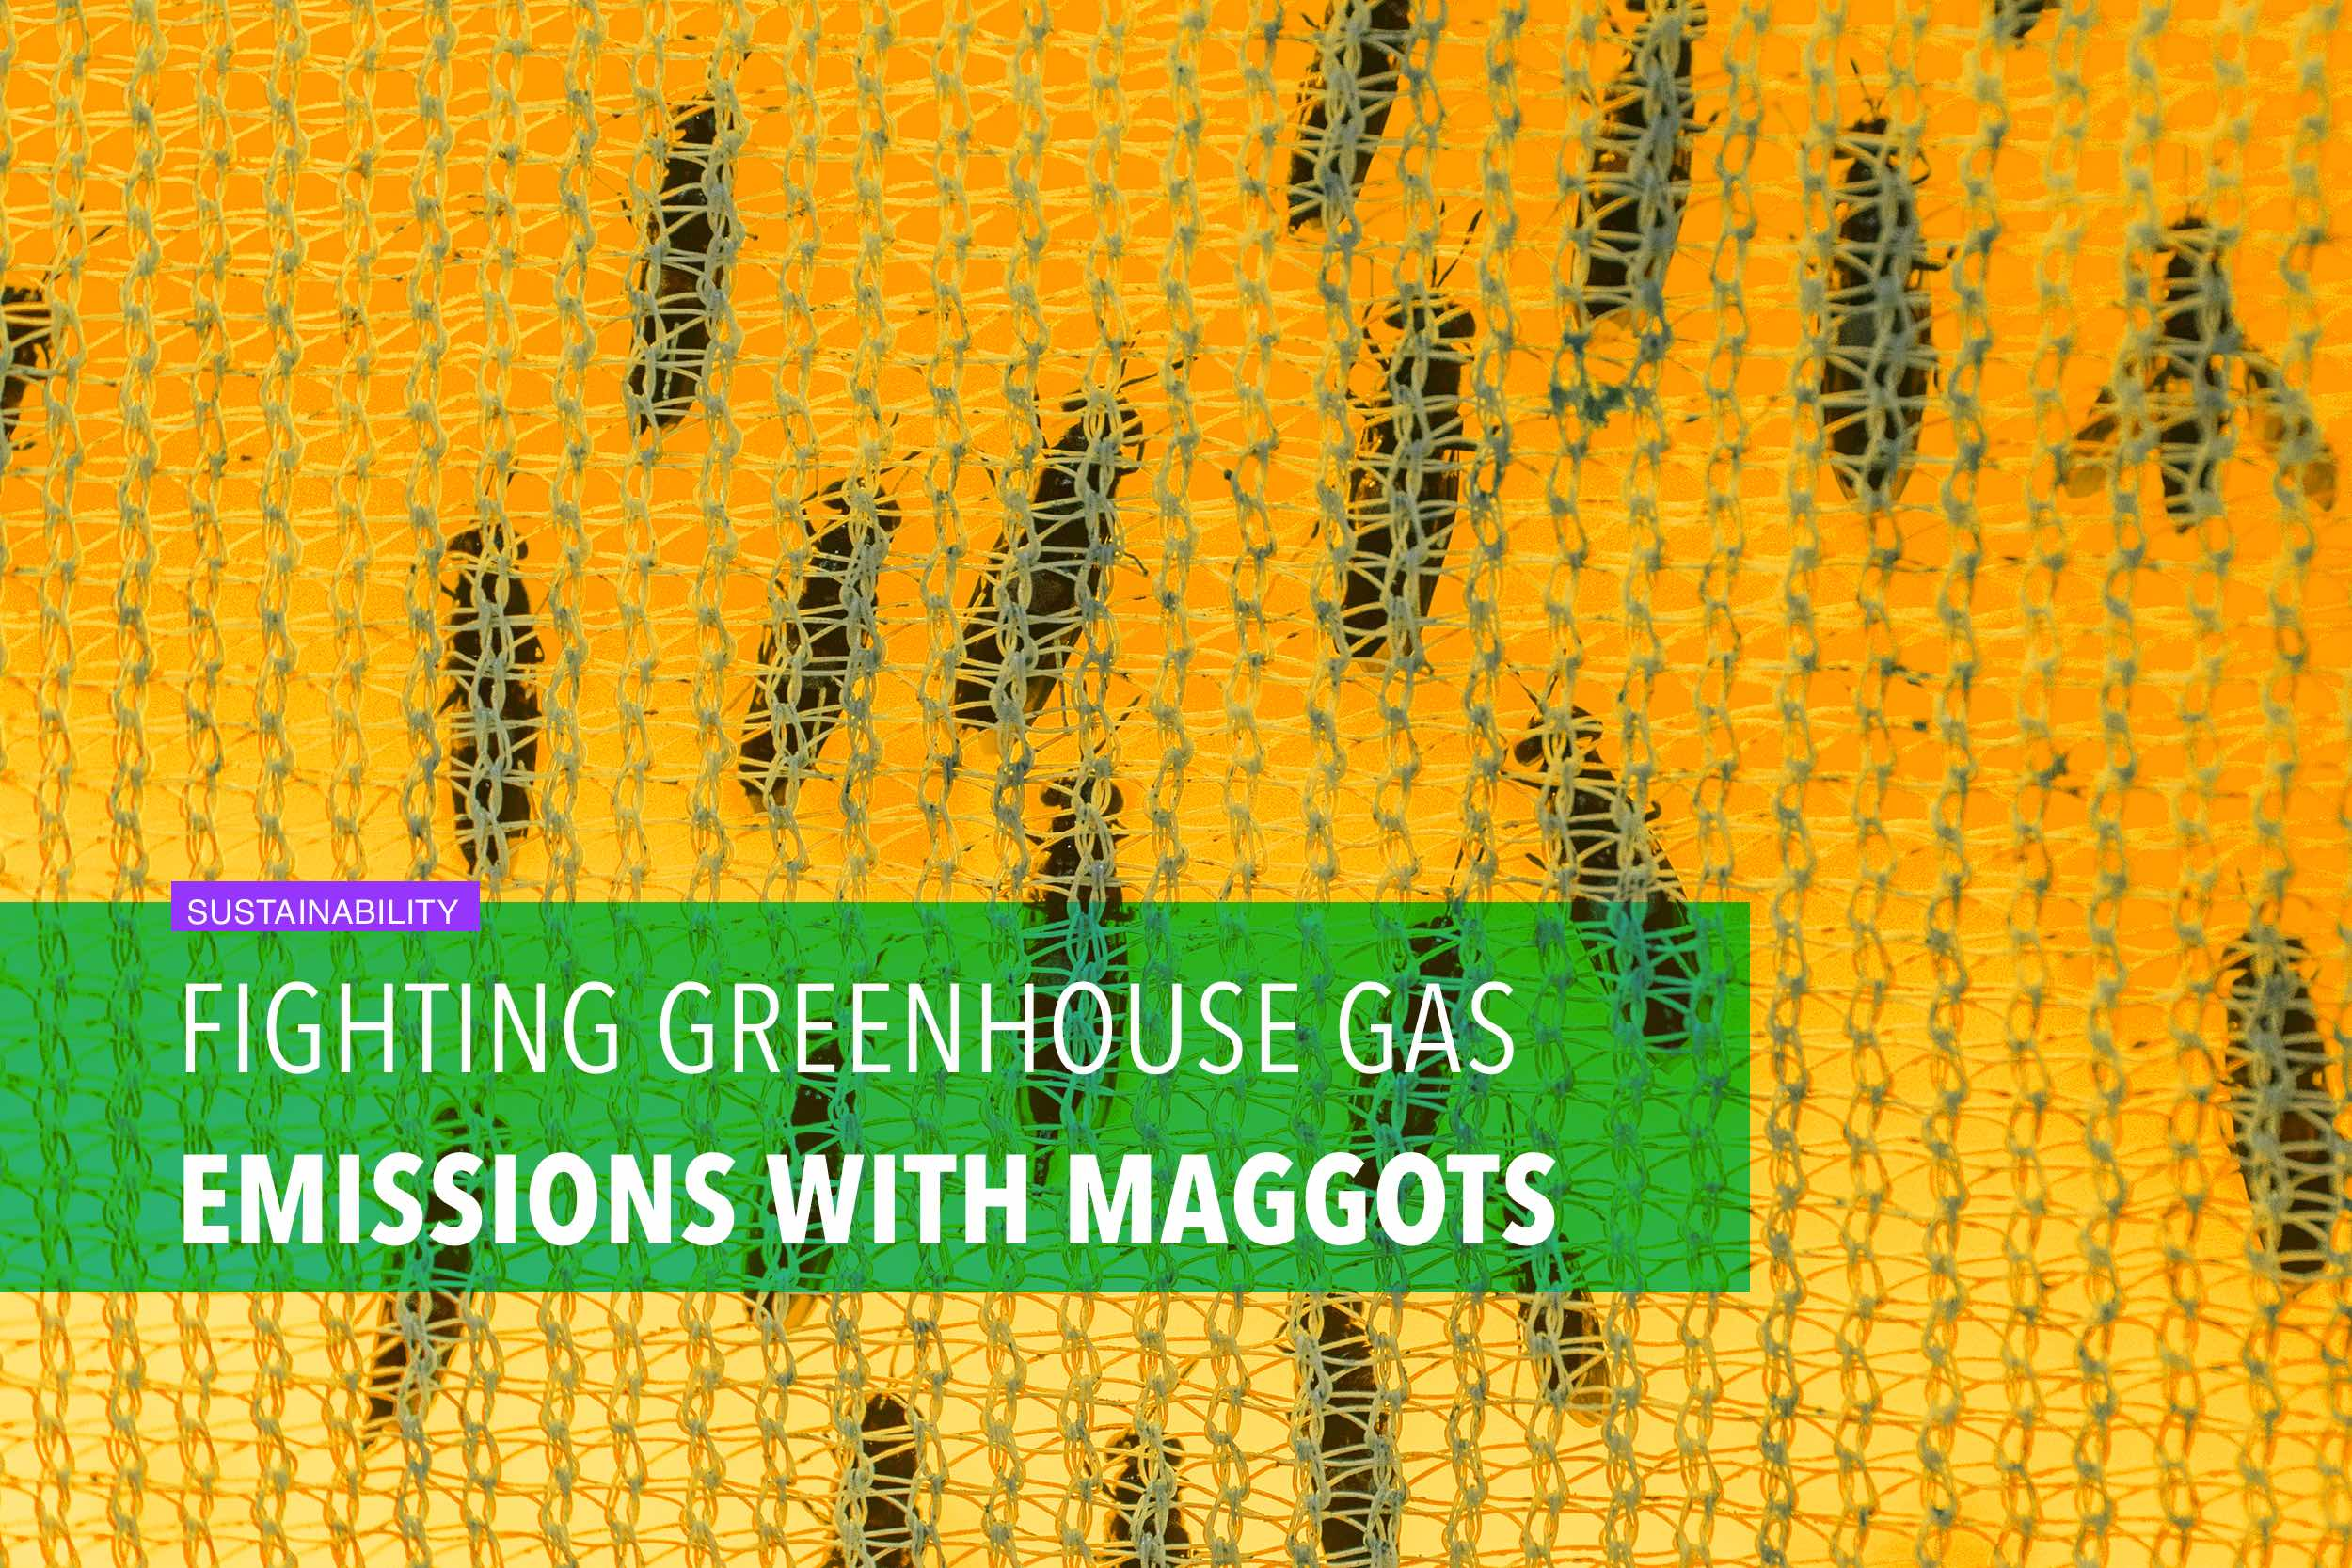 Fighting greenhouse gas emissions with maggots